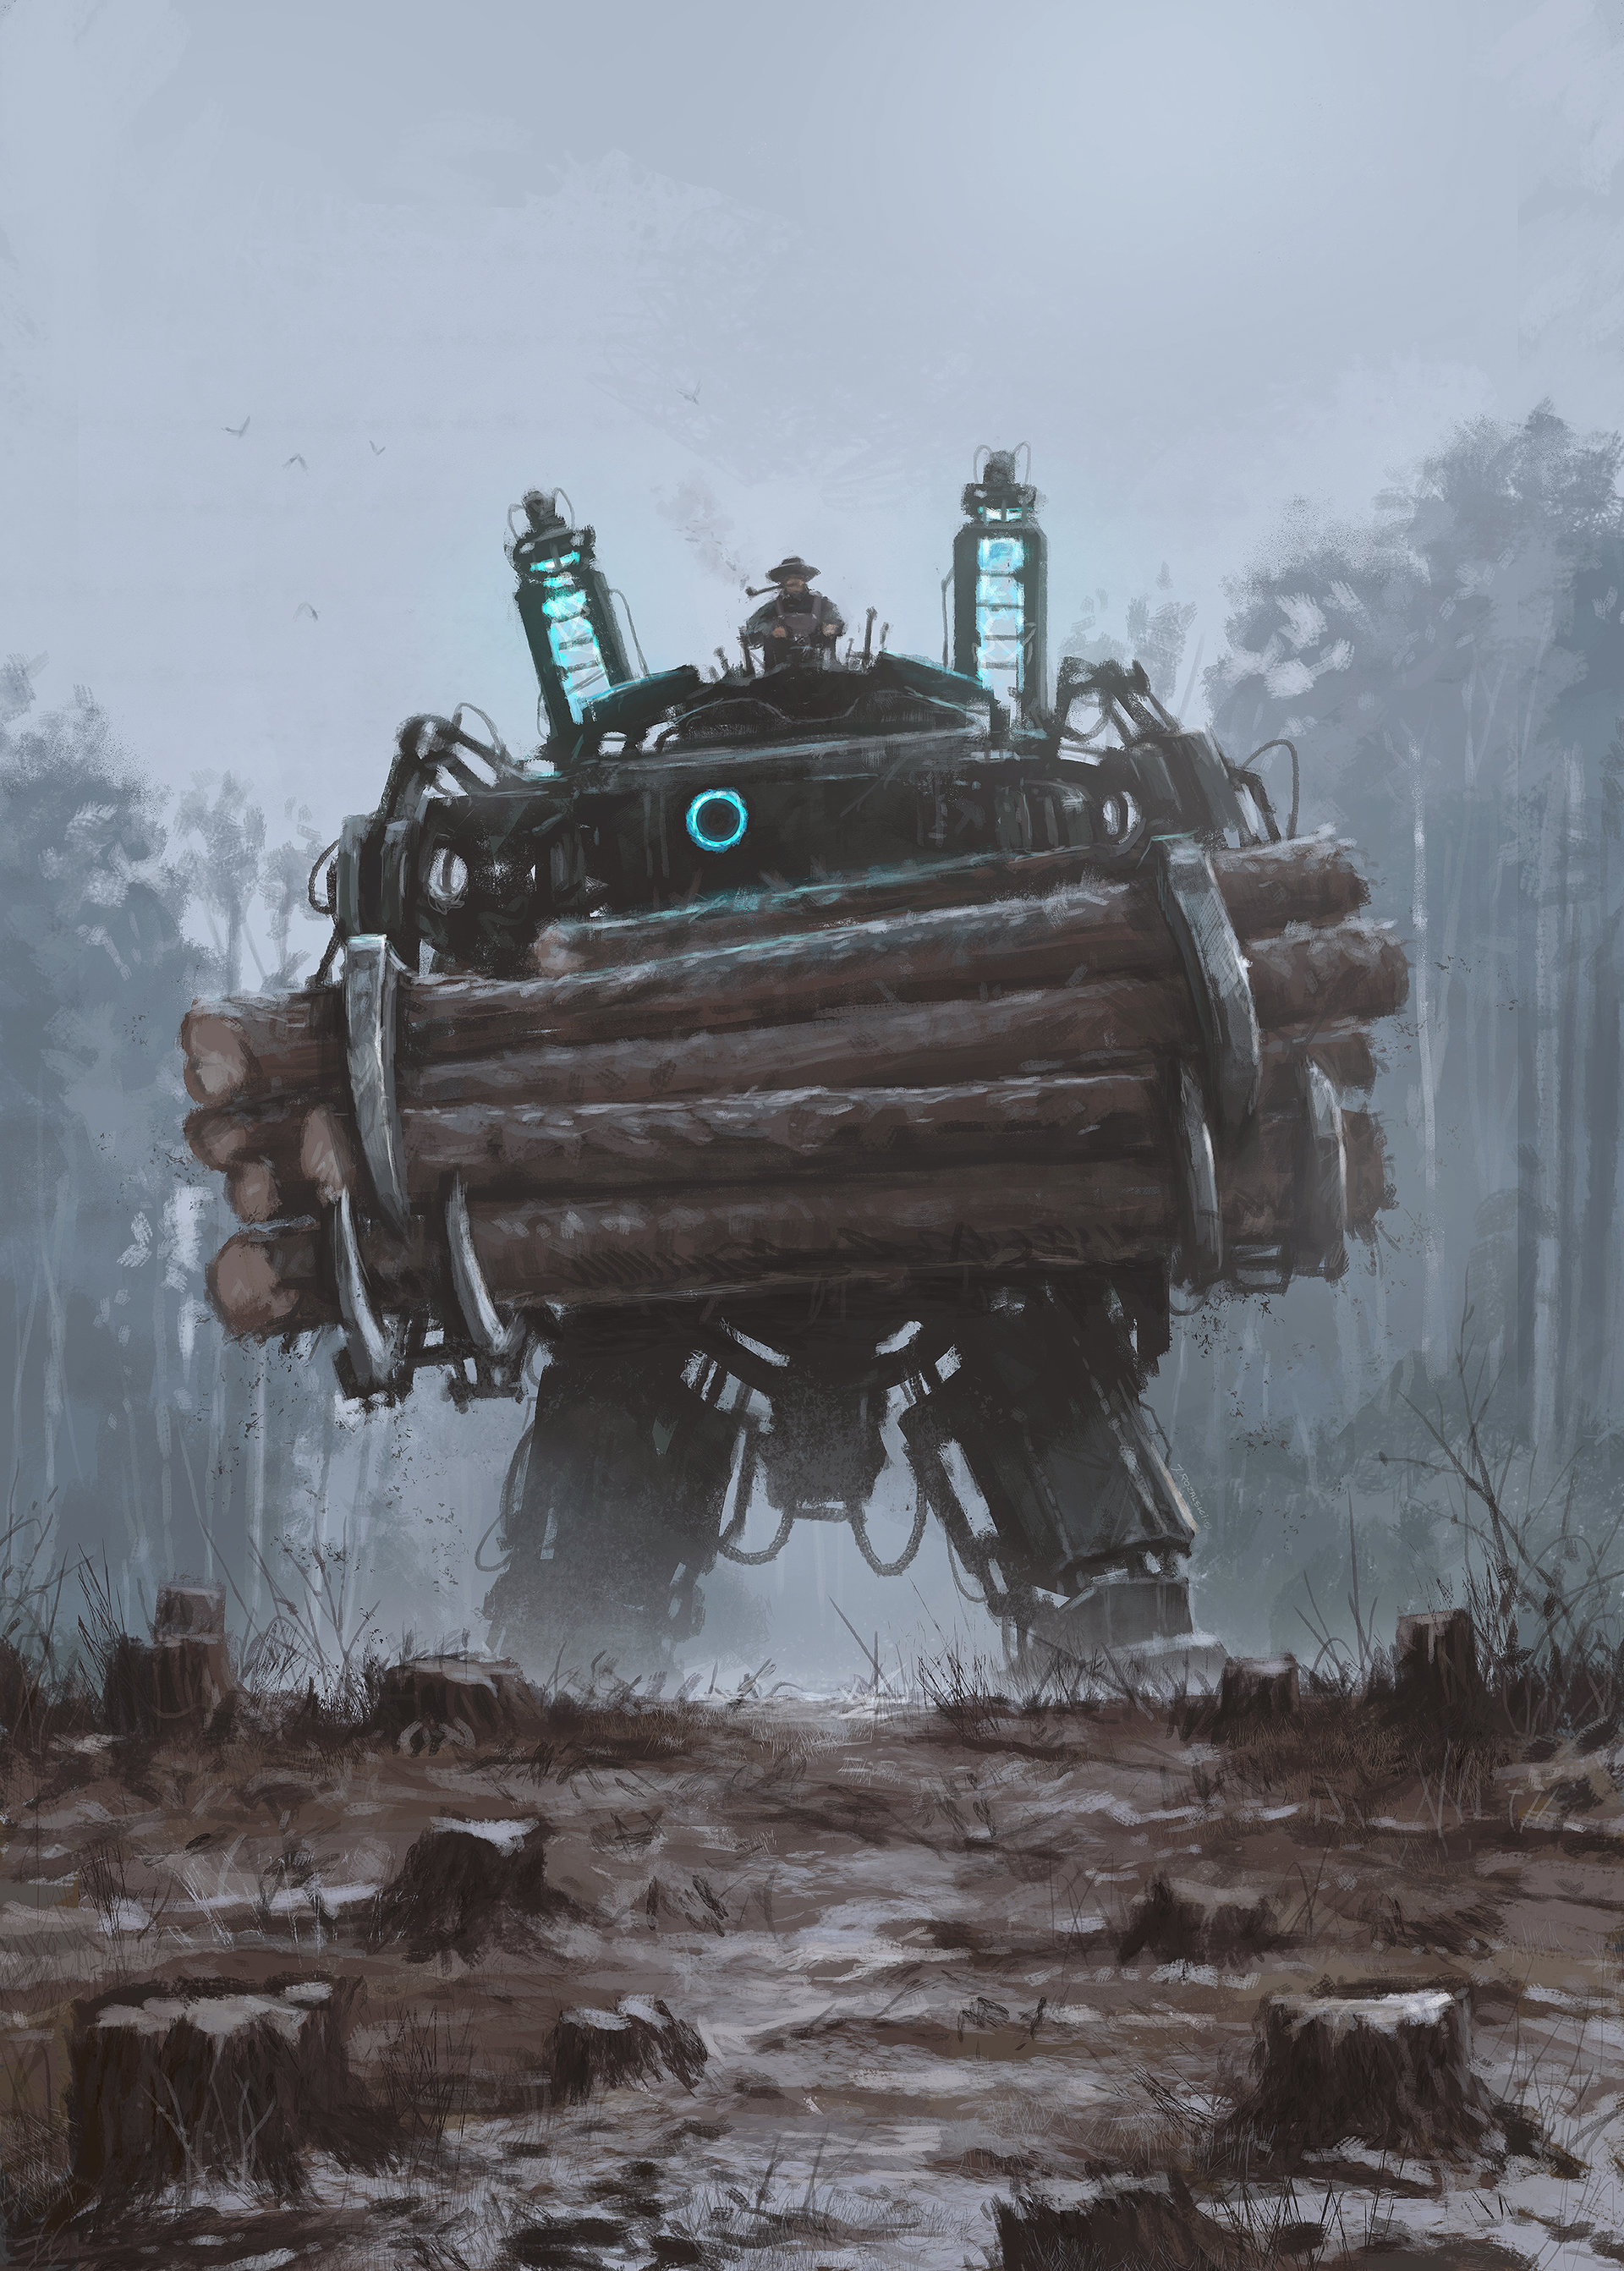 Jakub rozalski factory illustration 03 wwoodcaterls